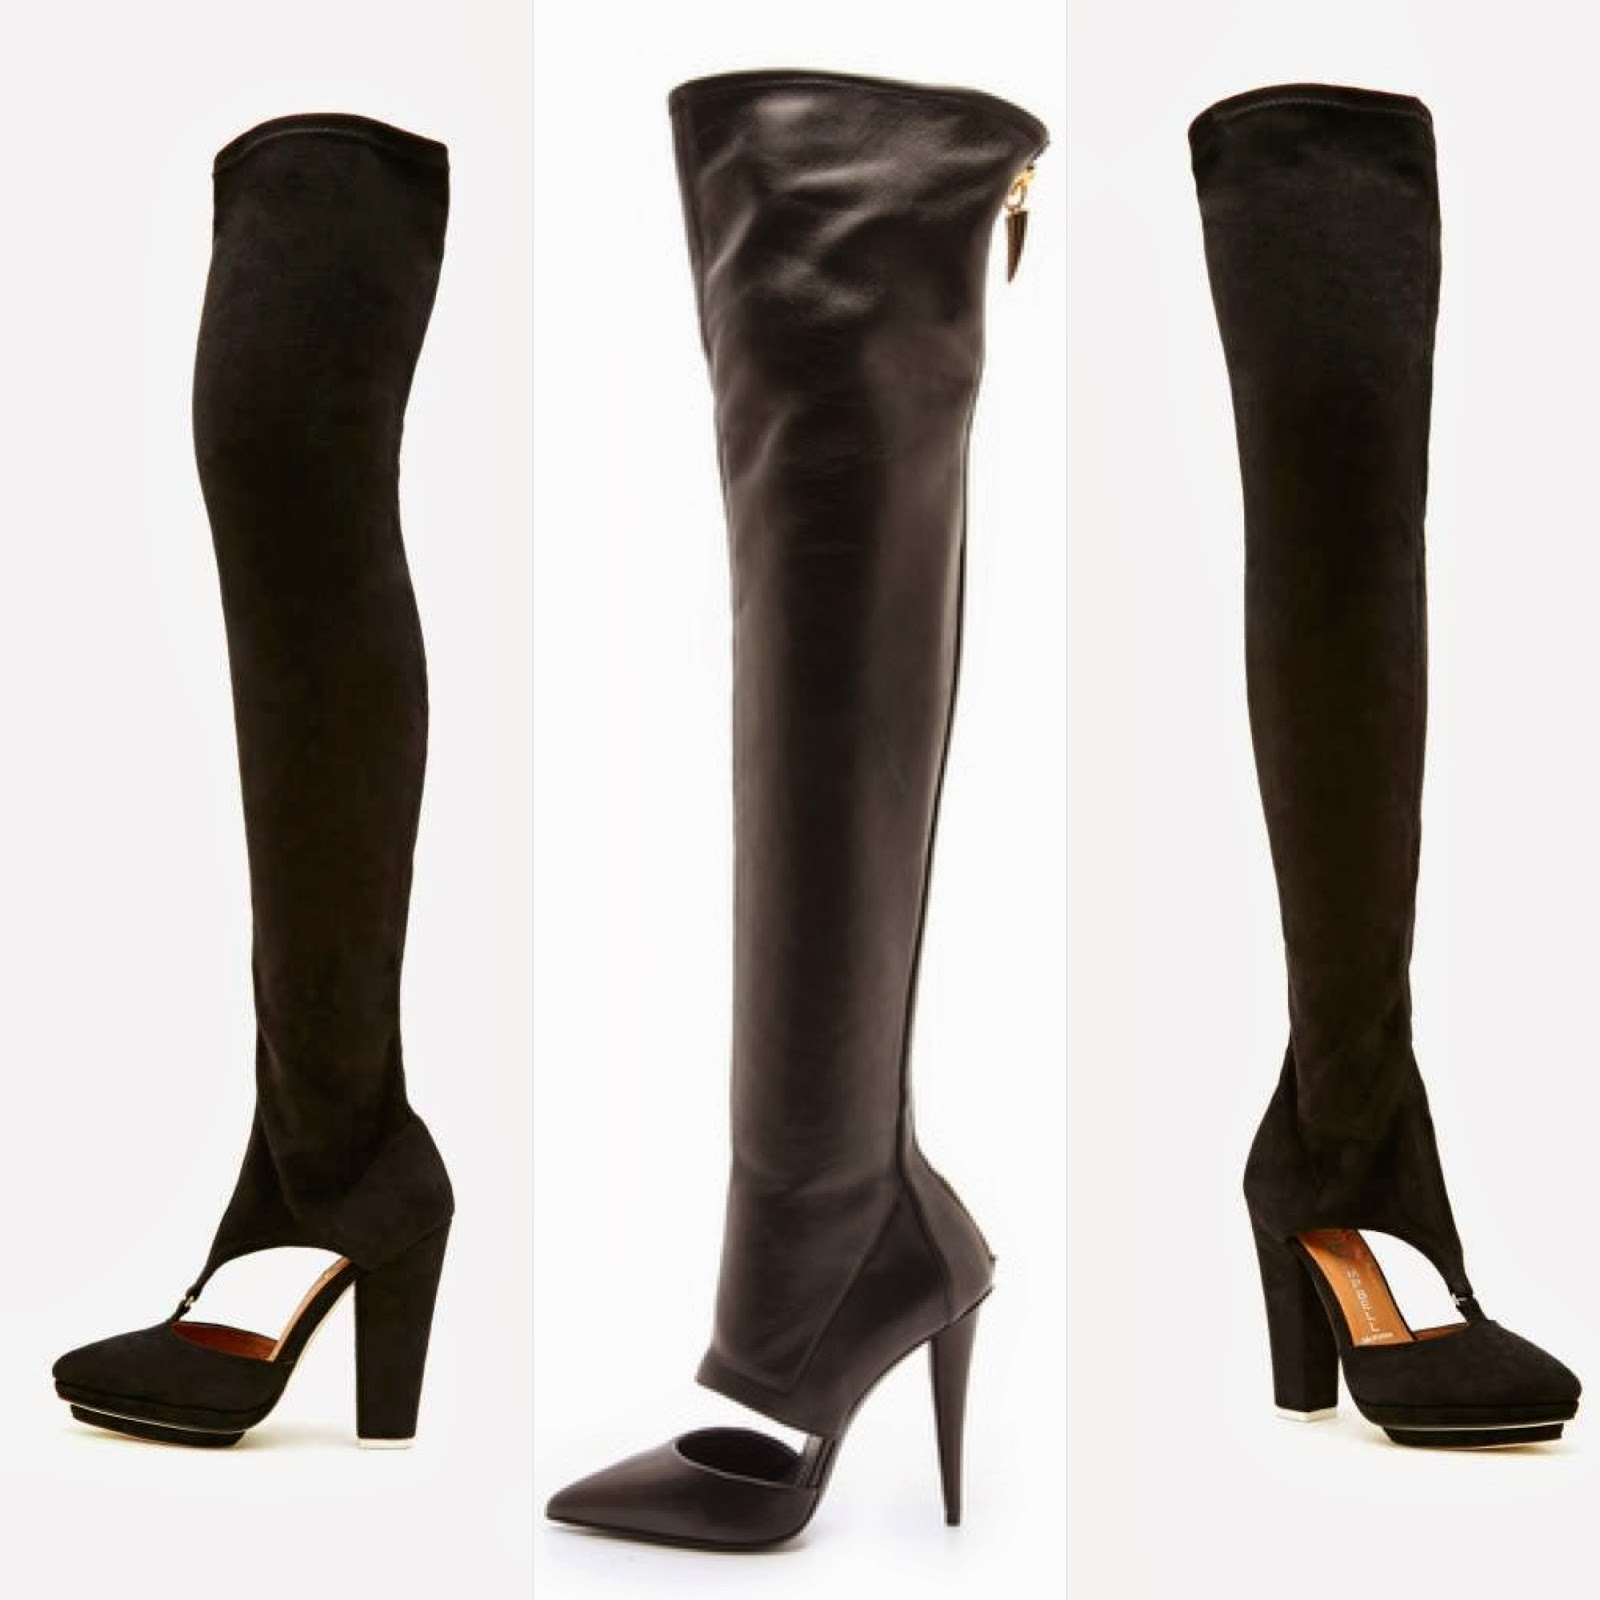 Jeffrey Campbell Thigh High Boots jzODzanU